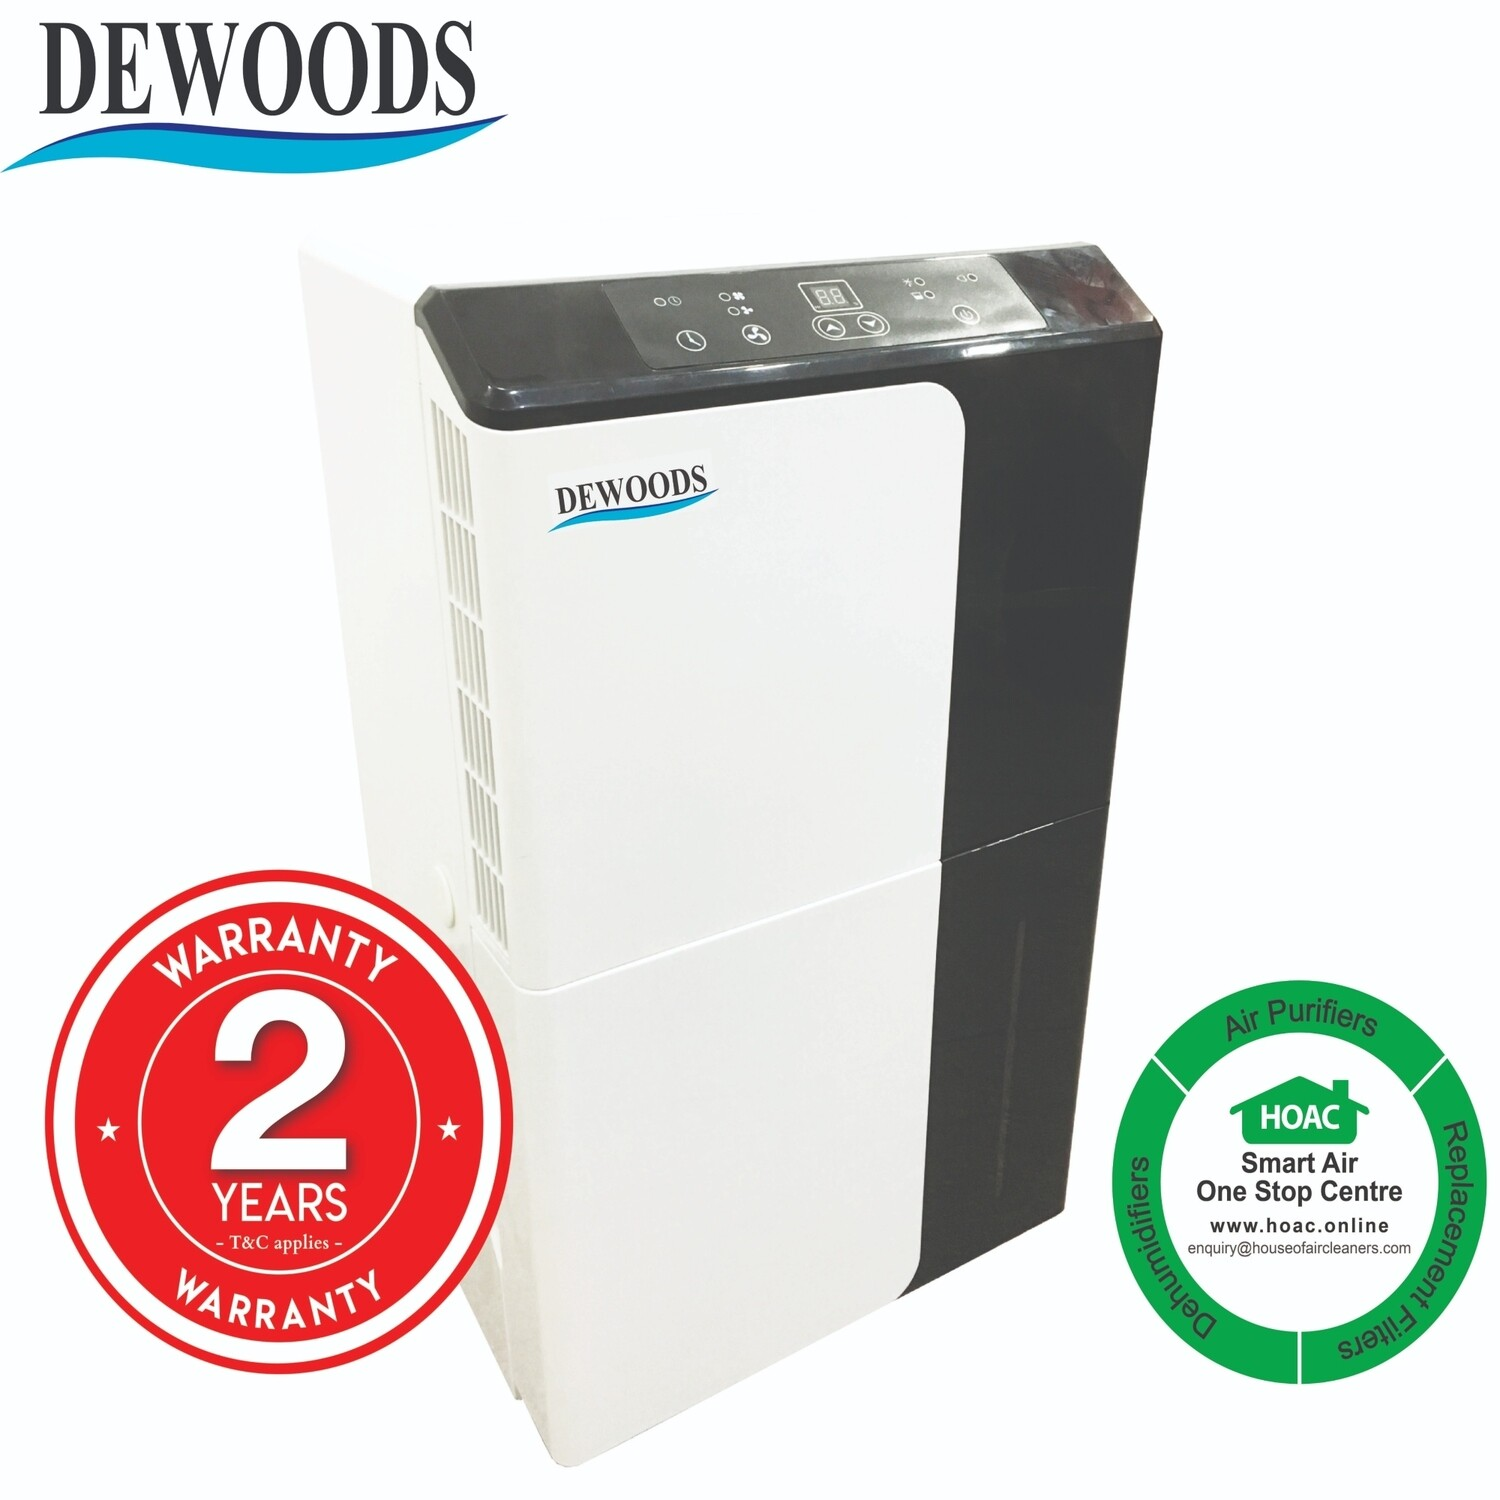 DEWOODS Dehumidifier MDH-50A (50 Litres) With 2 YEARS WARRANTY